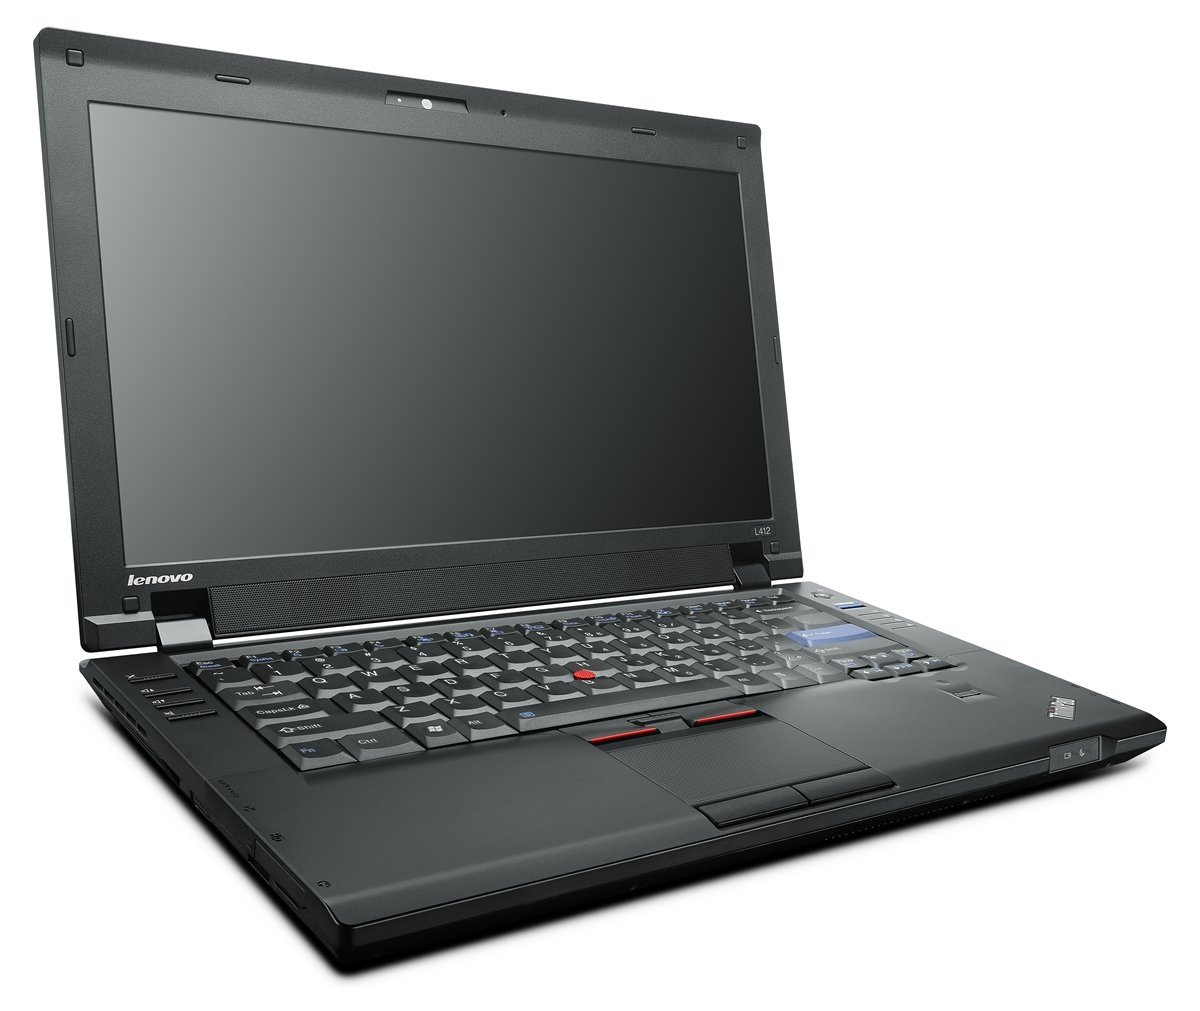 Comparer LENOVO THINKPAD T430S2356 NOIR CORE I7 3520M 2.9GHZ 4GO 180GO WIN7